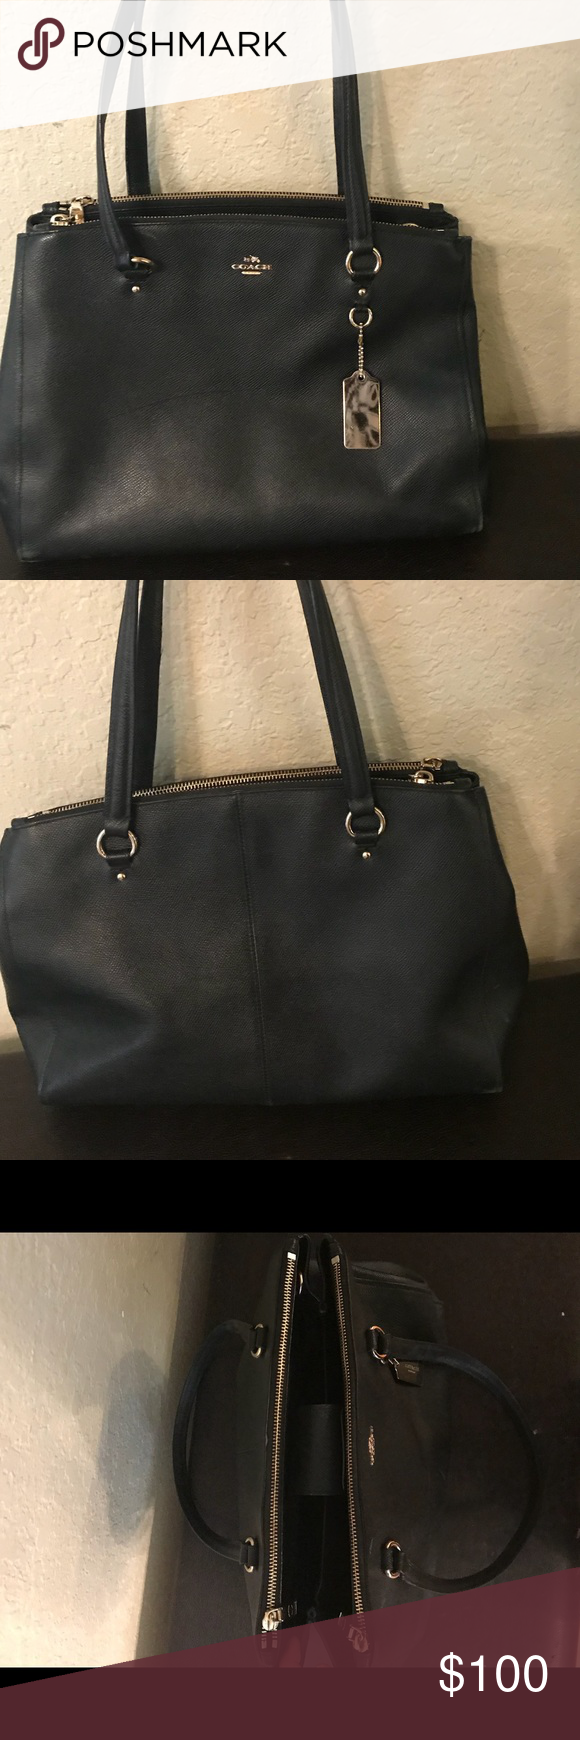 Coach Bag Coach bag in good shape. Black. Dimensions 14 in wide 6 in deep 10  in y all. Strap is 10in from top of purse Coach Bags Shoulder Bags 589c64a1934a1